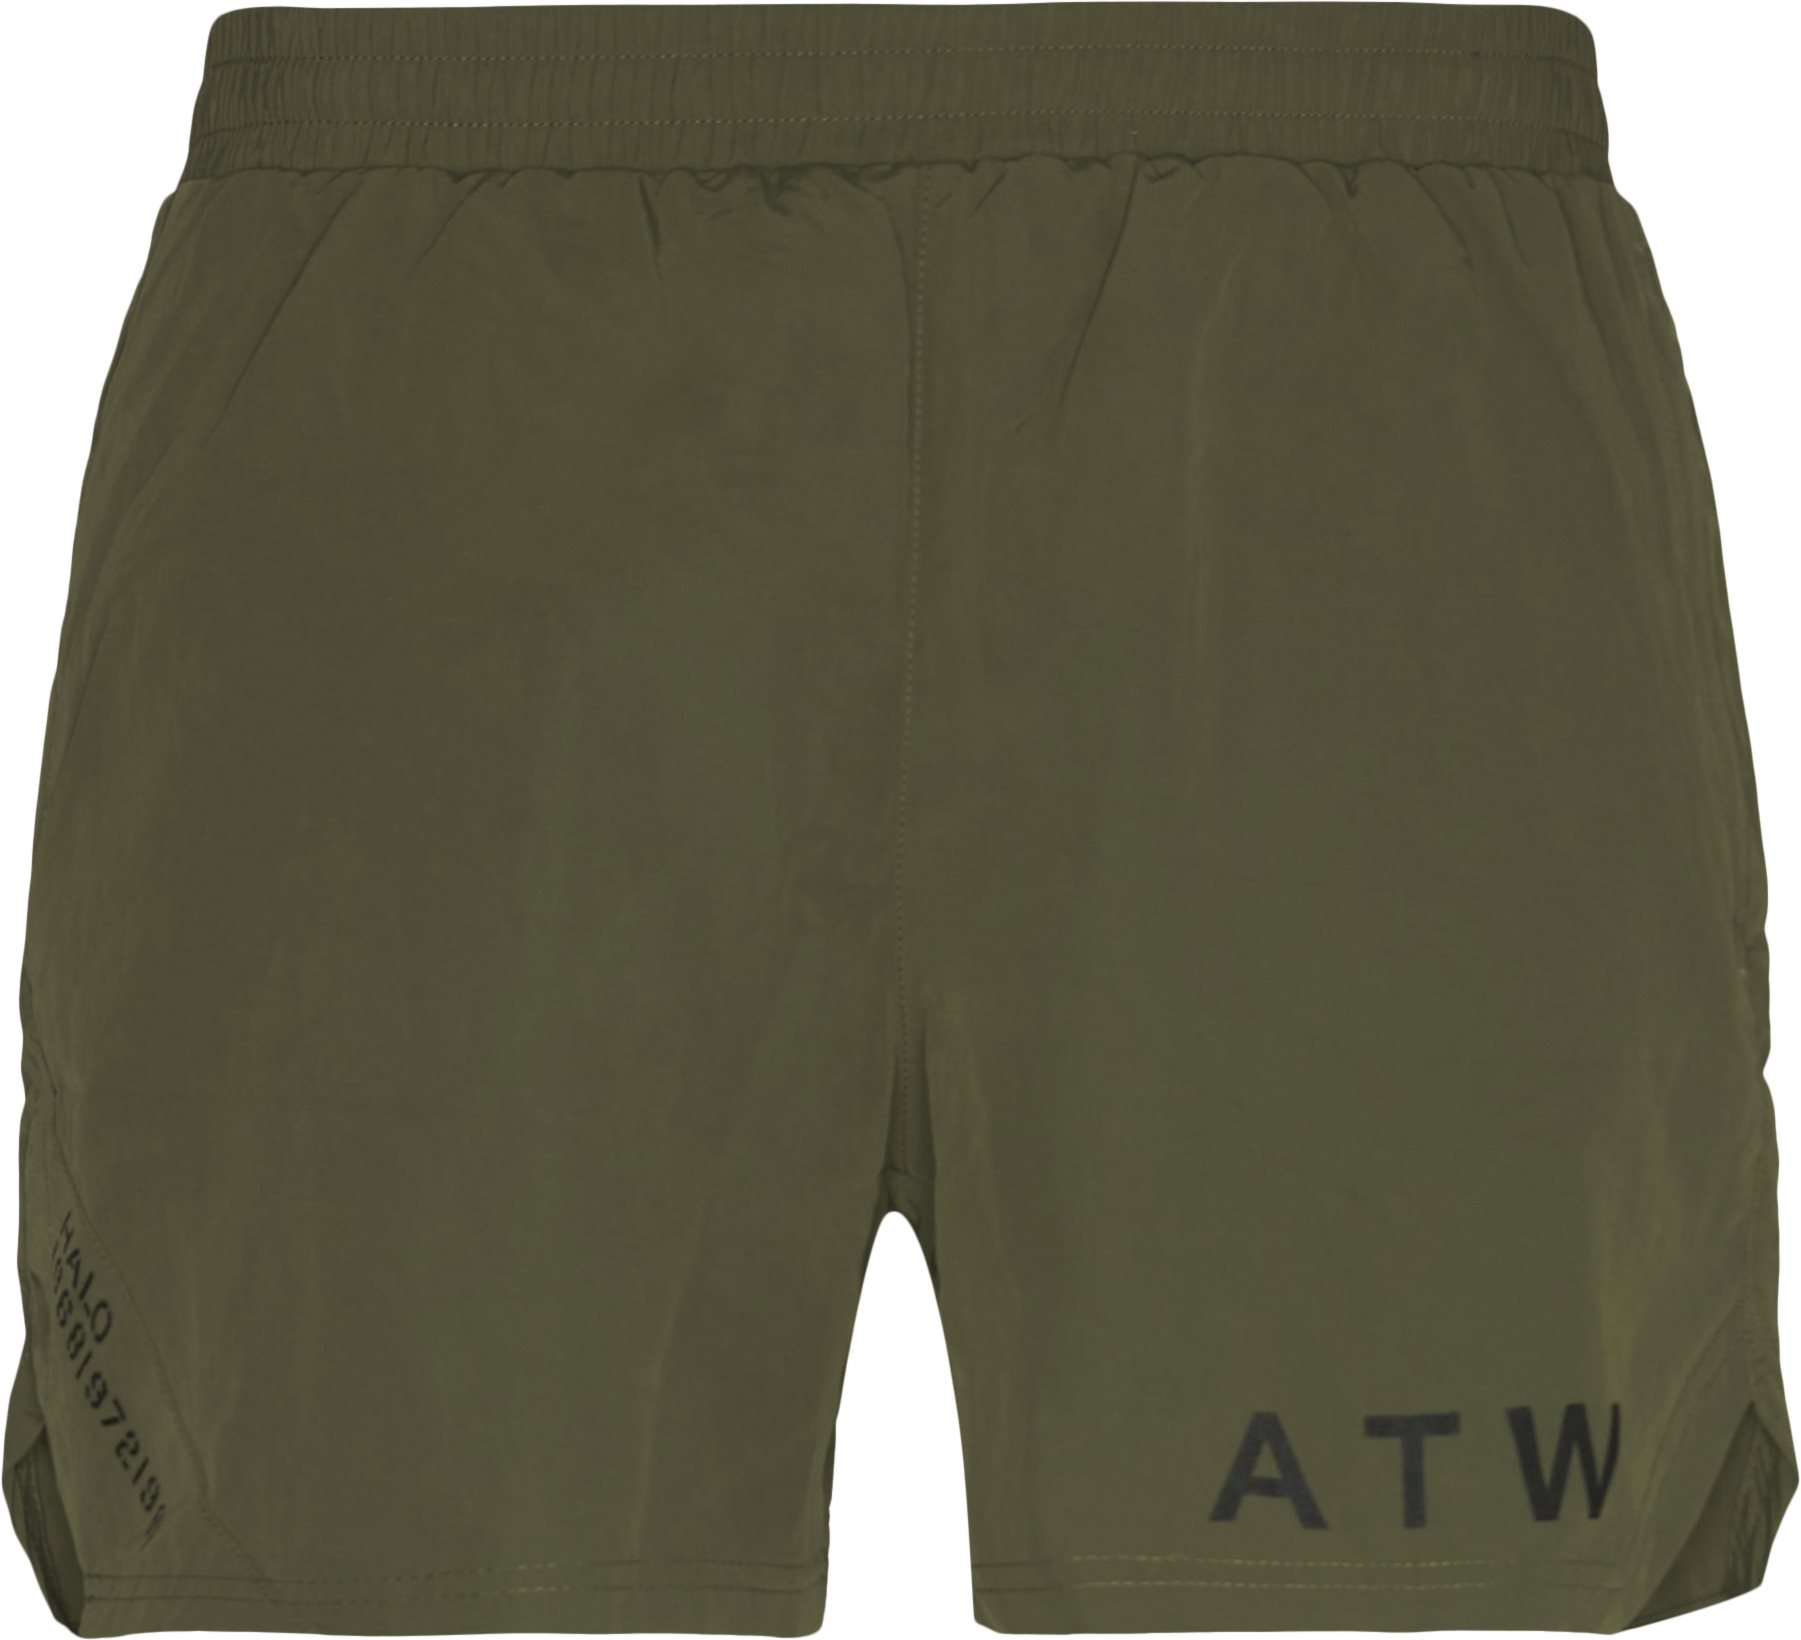 Atw Shorts - Shorts - Straight fit - Army